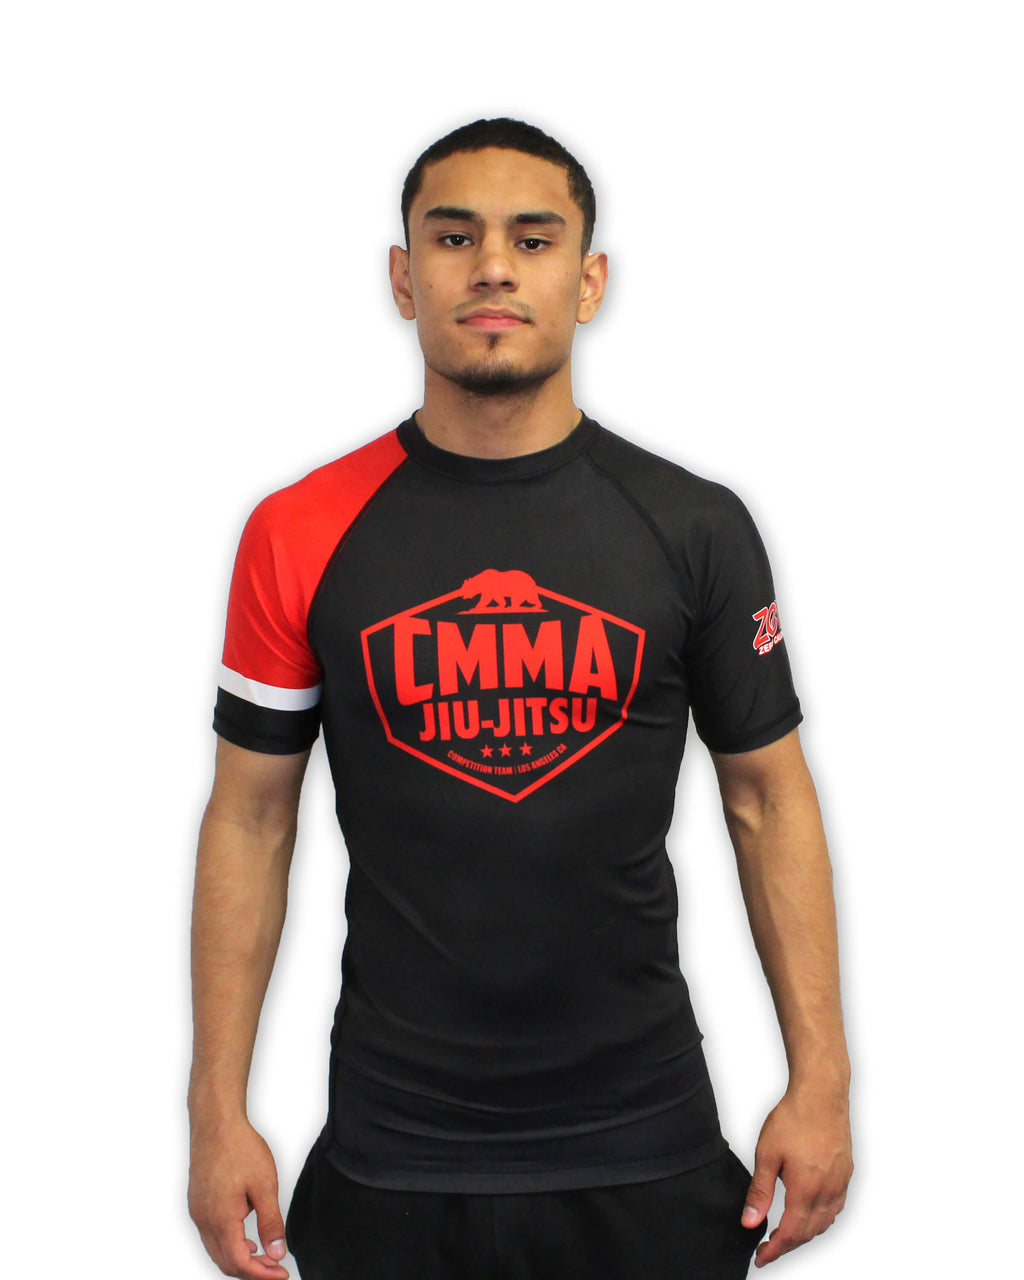 CMMA Rash Guard Short Sleeve Black